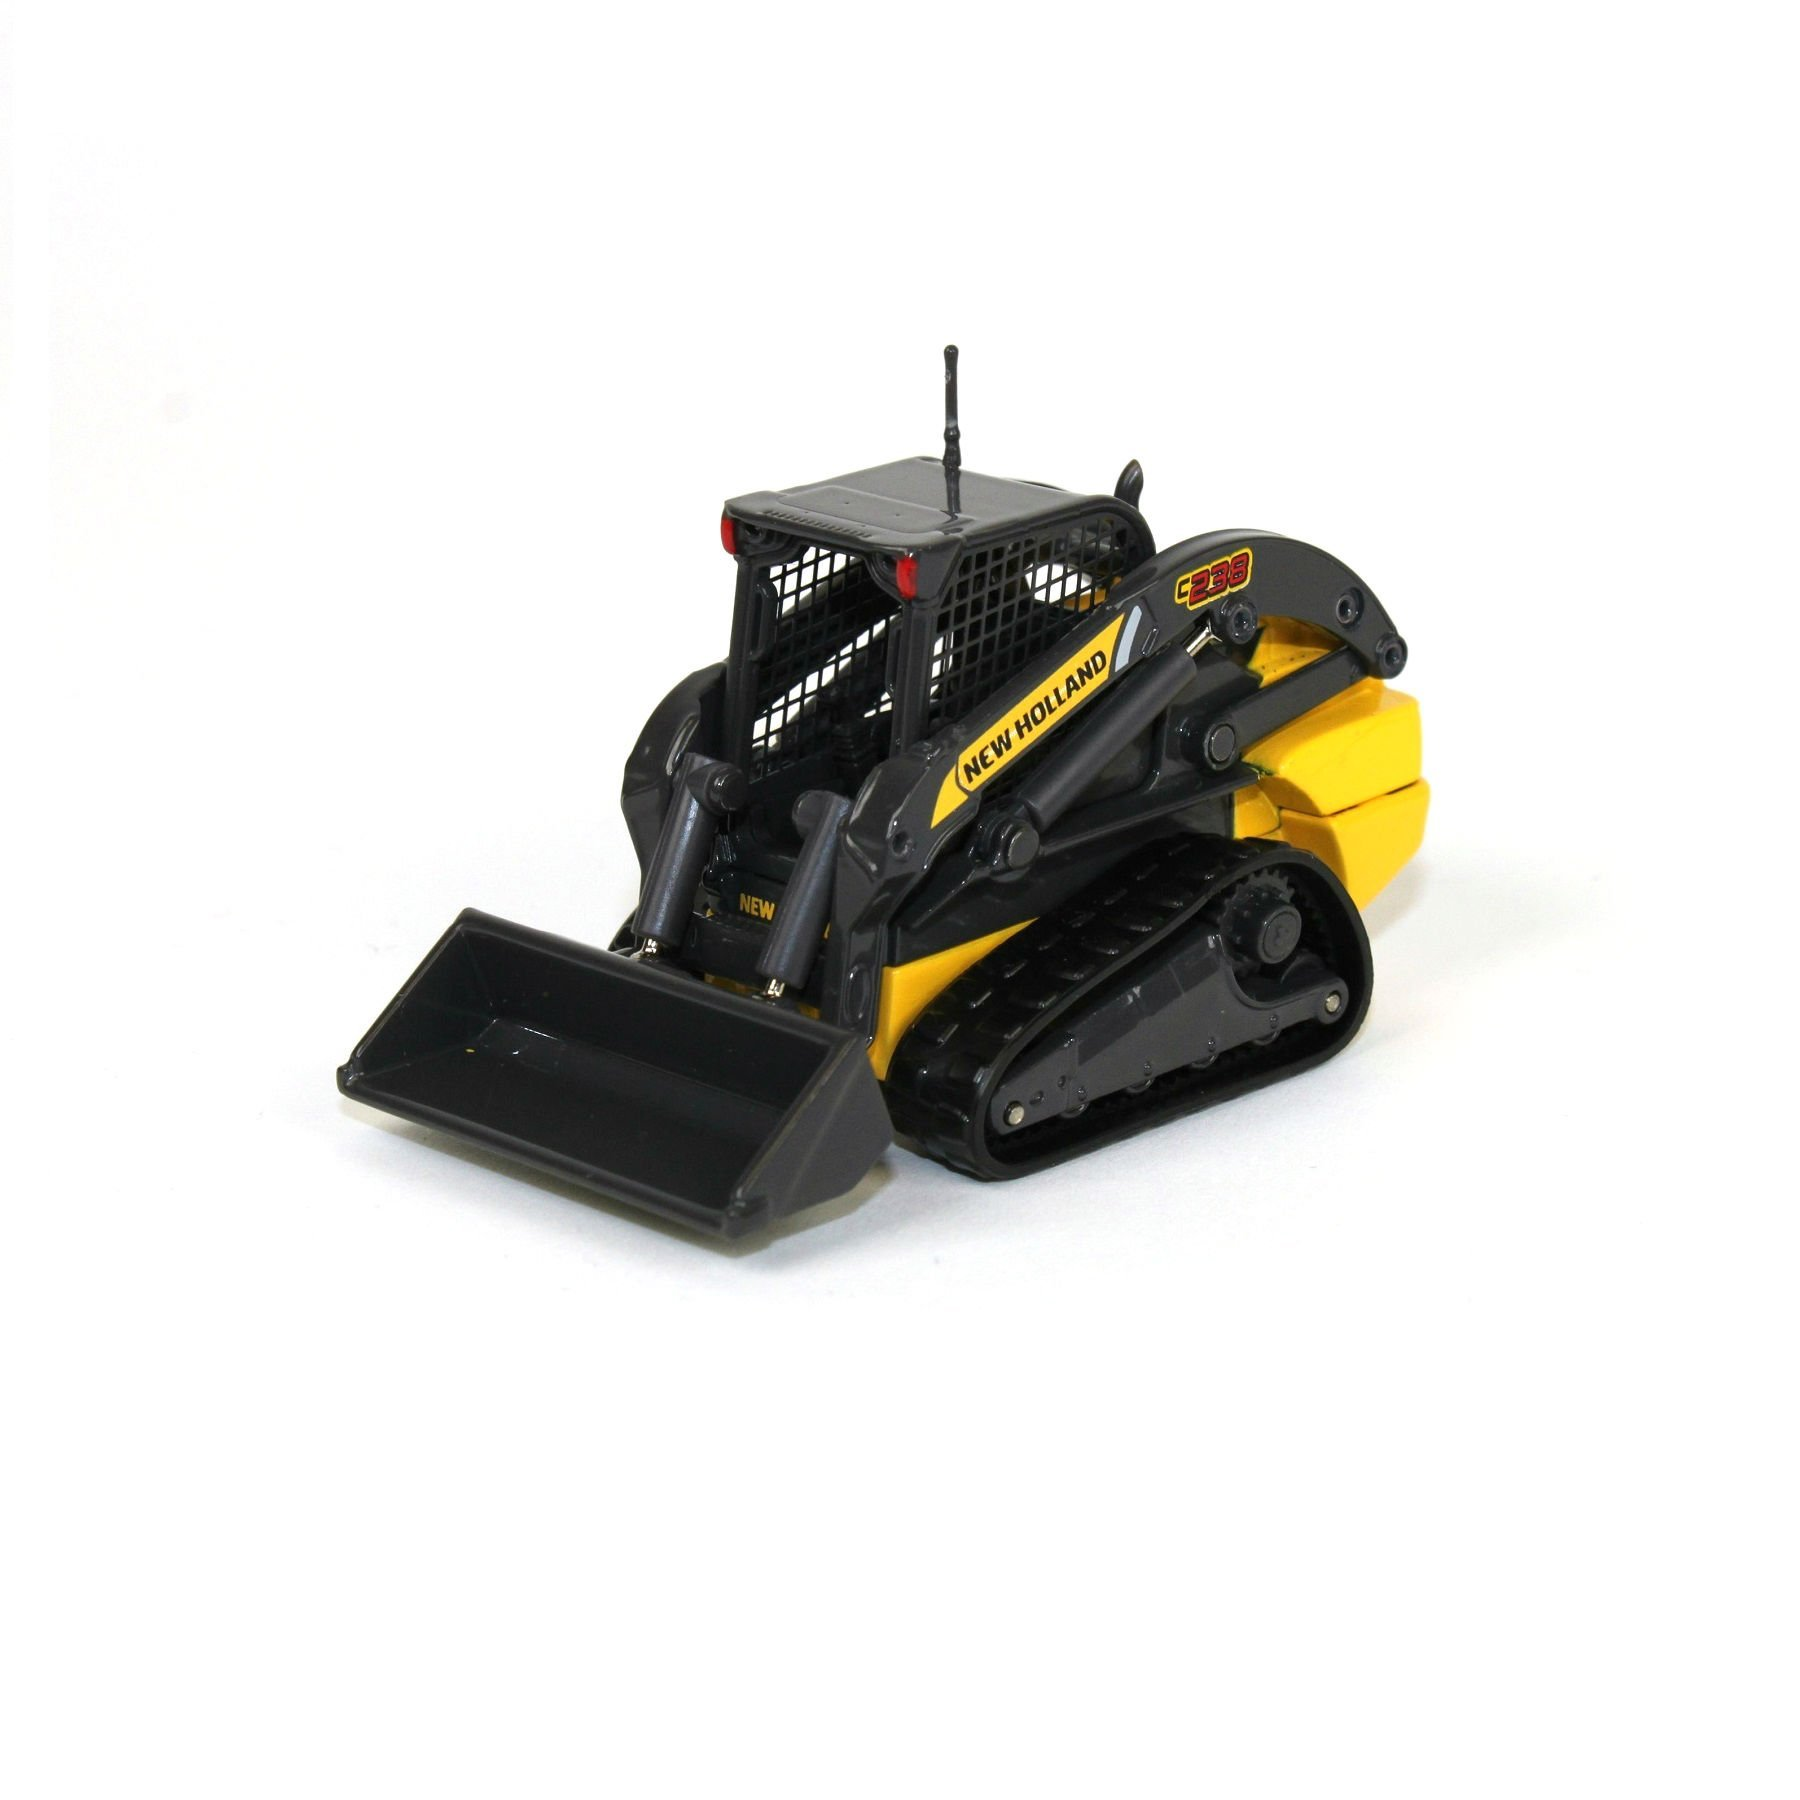 New Holland C238 Tracked Skid Steer, A detailed scale model of the New Holland C238 in scale 1:50. A quality die cast scale model with realistic and accurately replicated features and details just like the real machine. A collectors item,